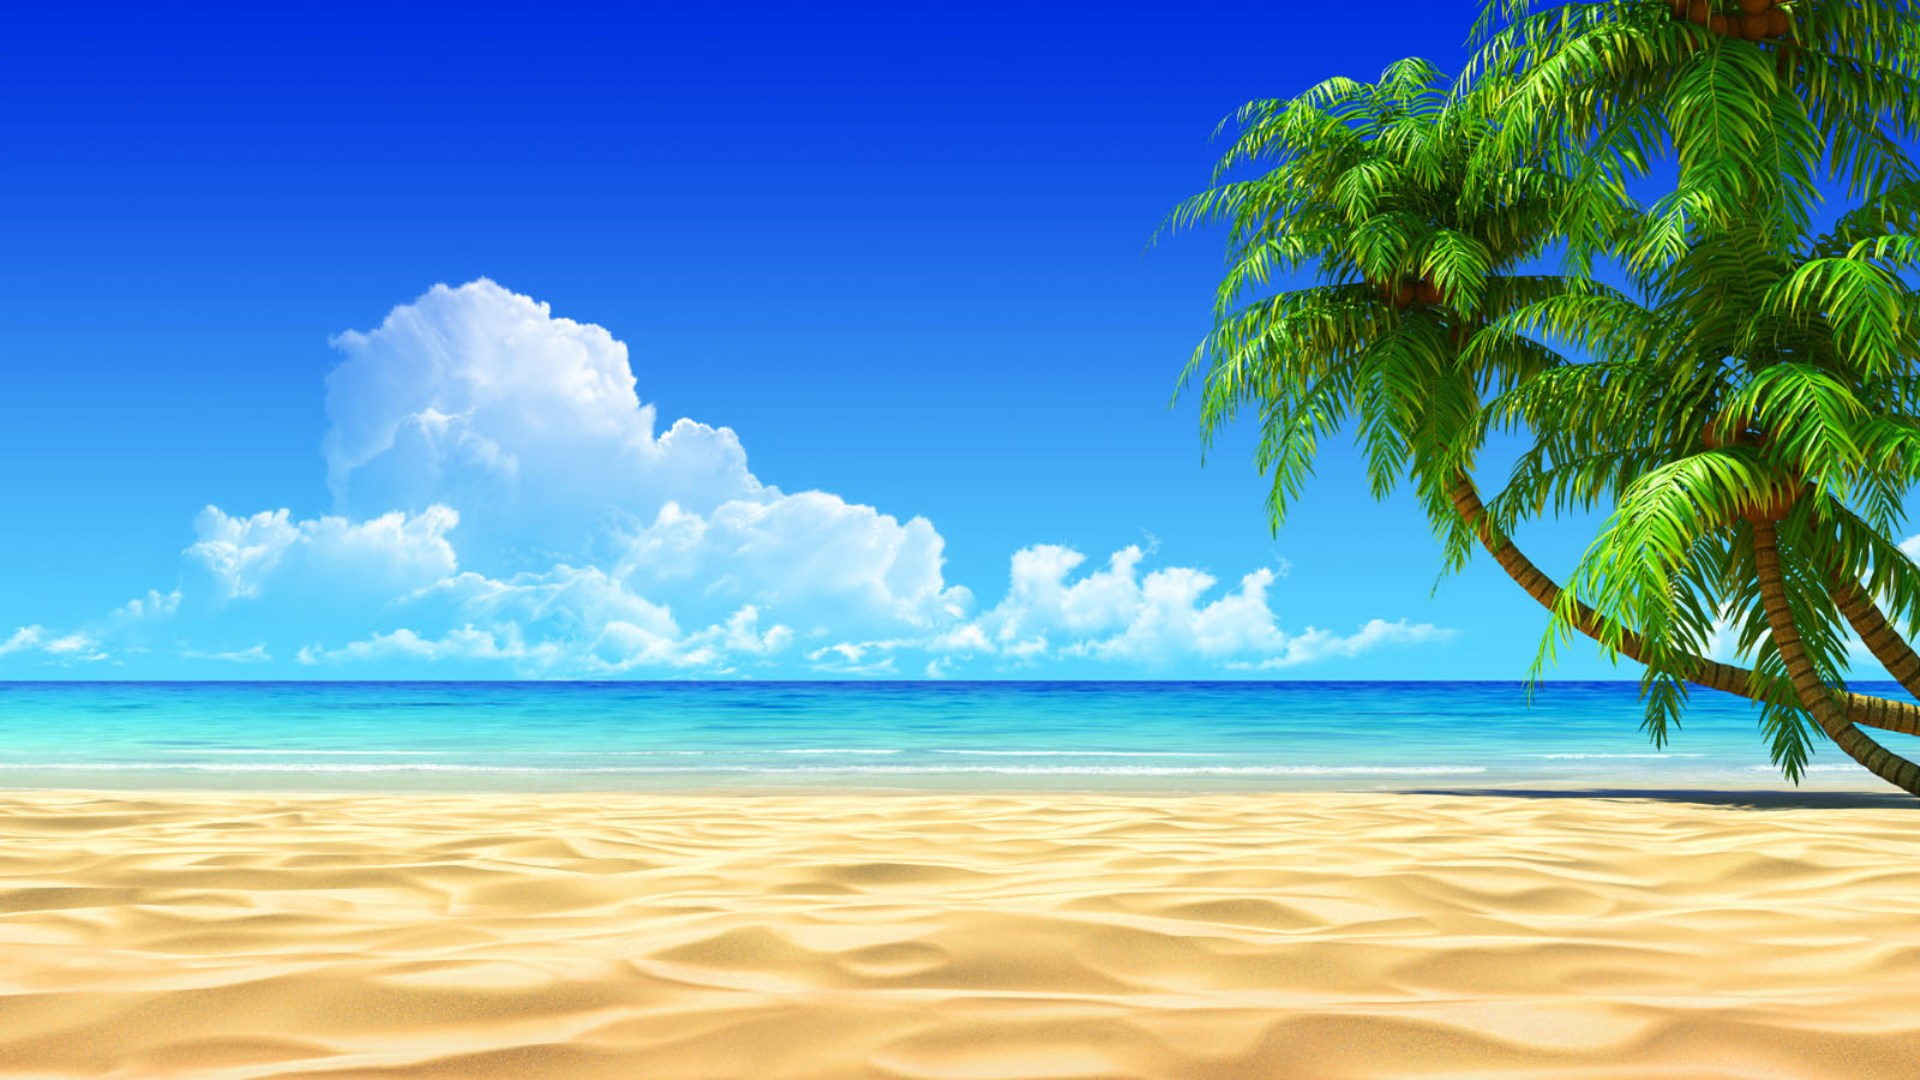 Free Beach Wallpaper Design Ideas French Blue Ipad Hd 1920x1080px